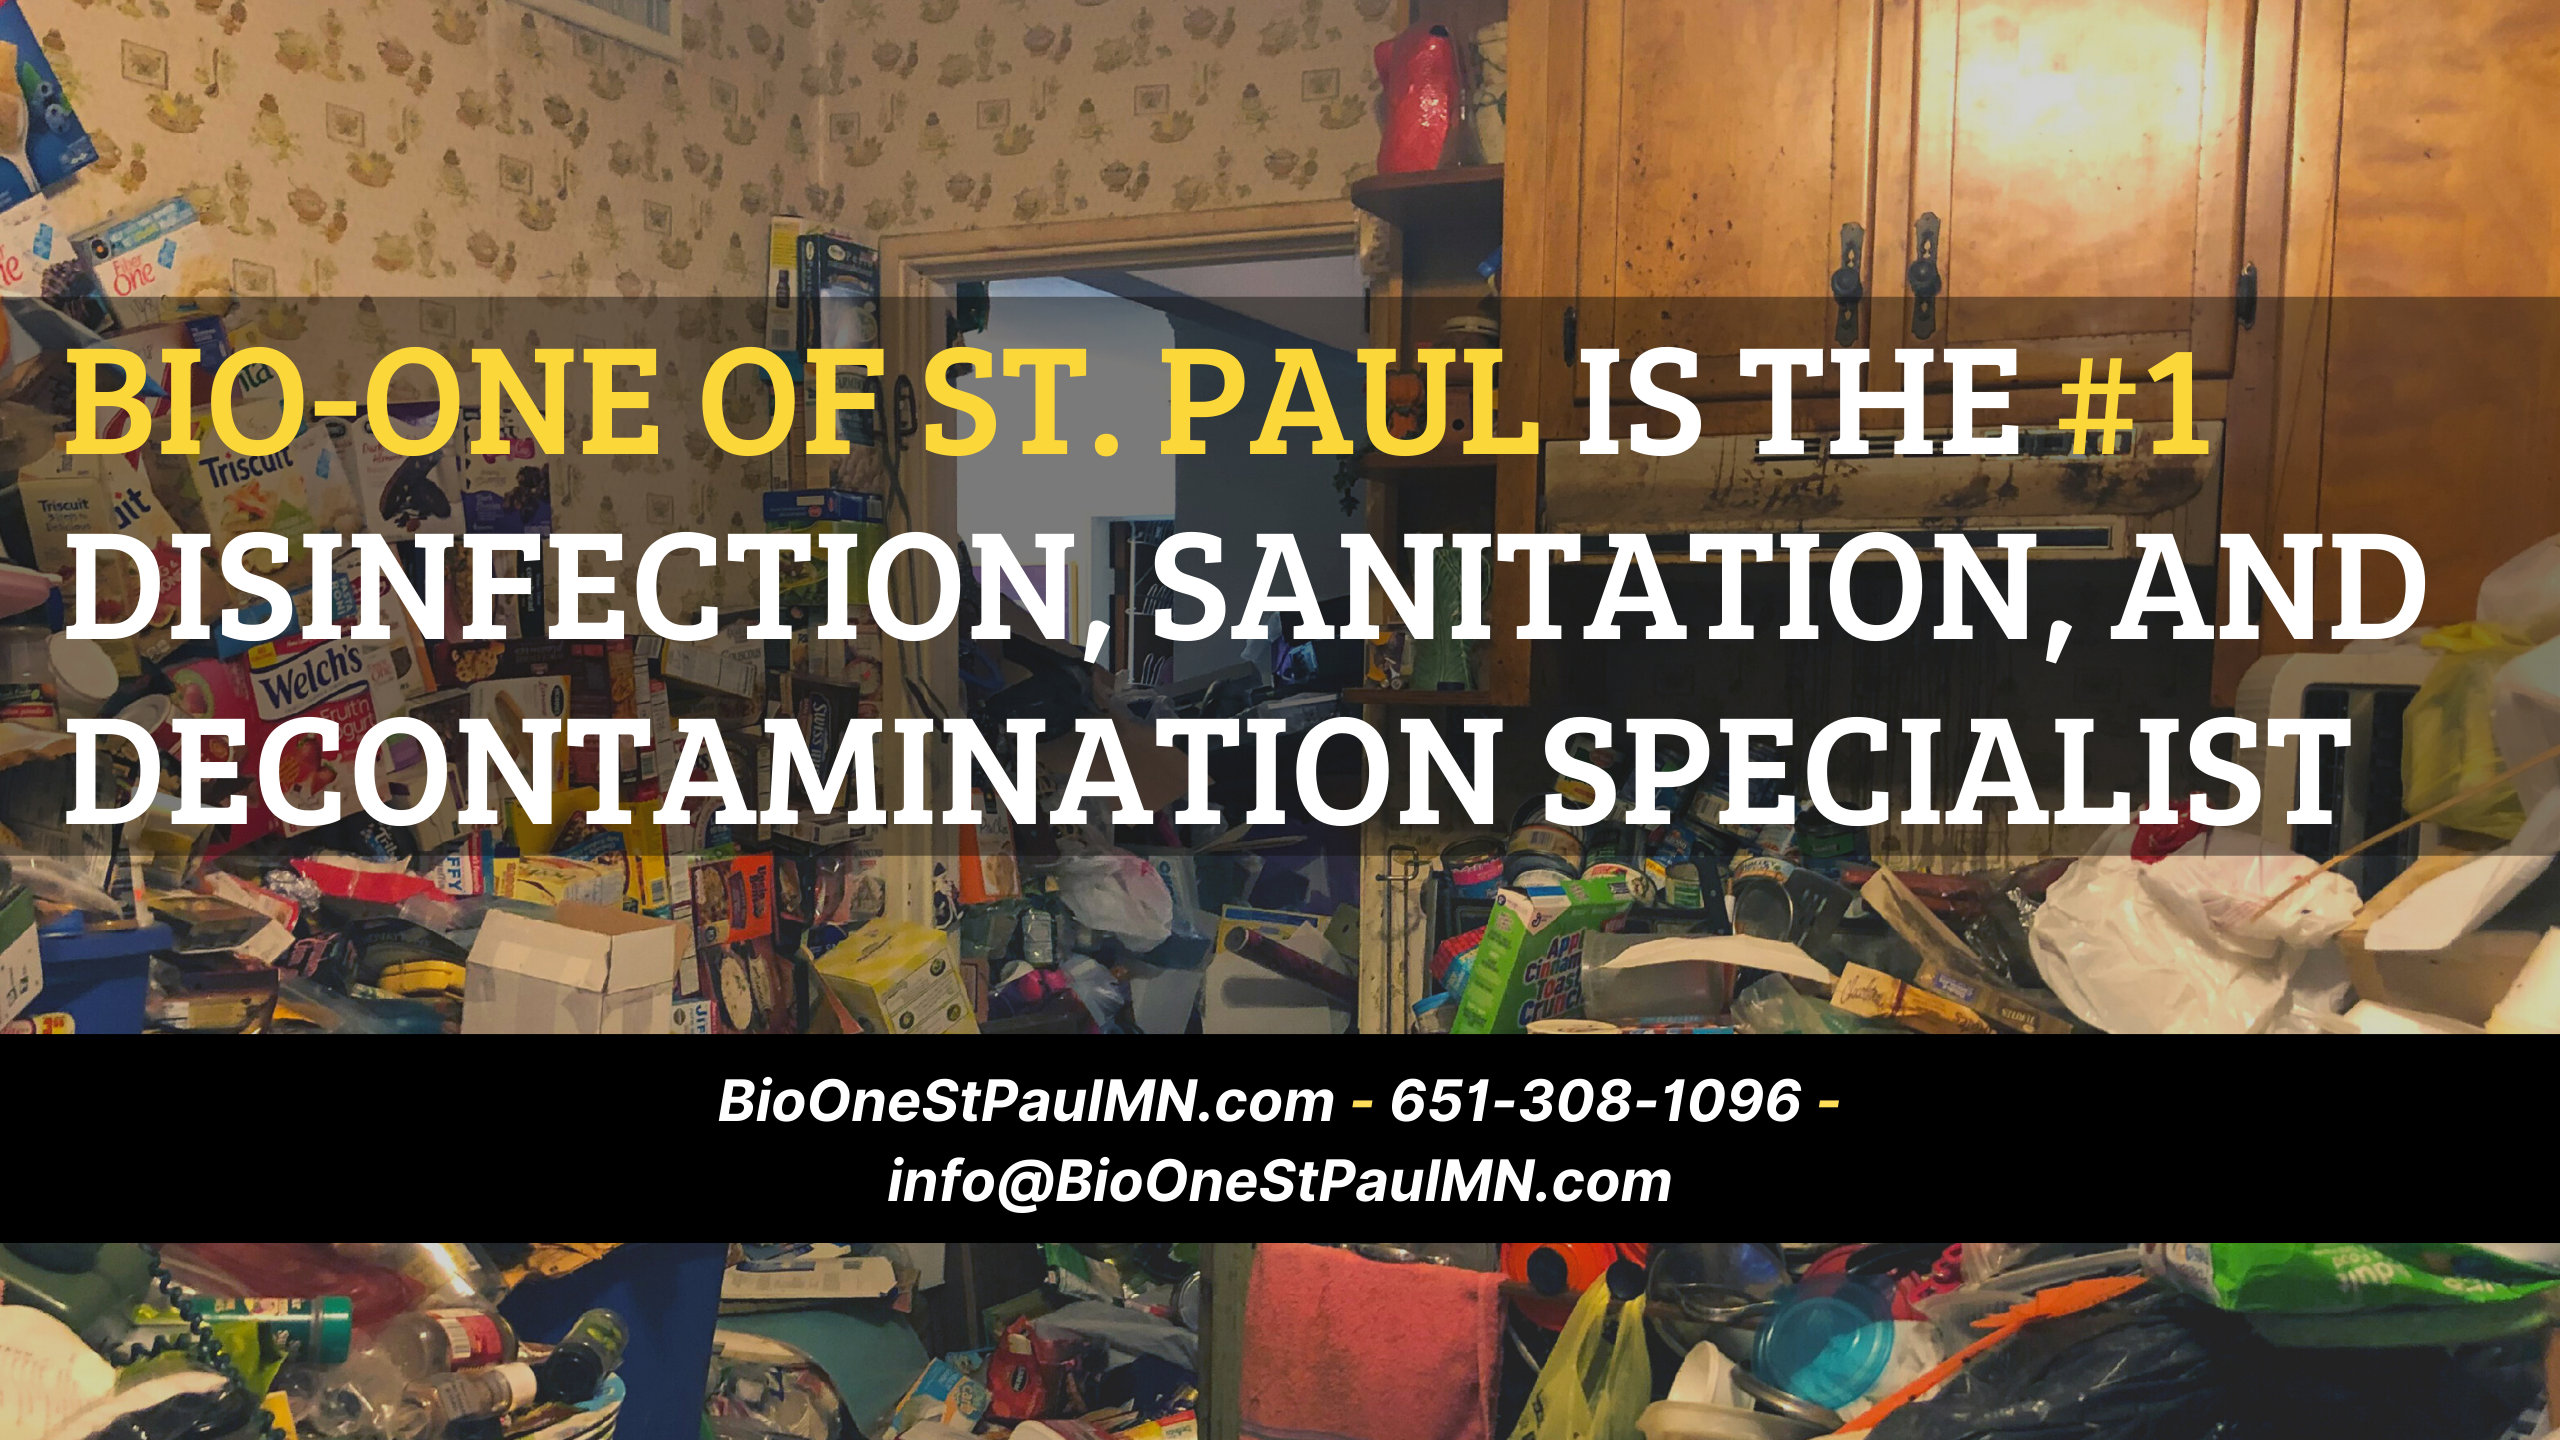 Bio-One of St. Paul is the #1 Disinfection, Sanitation, and Decontamination Specialist!